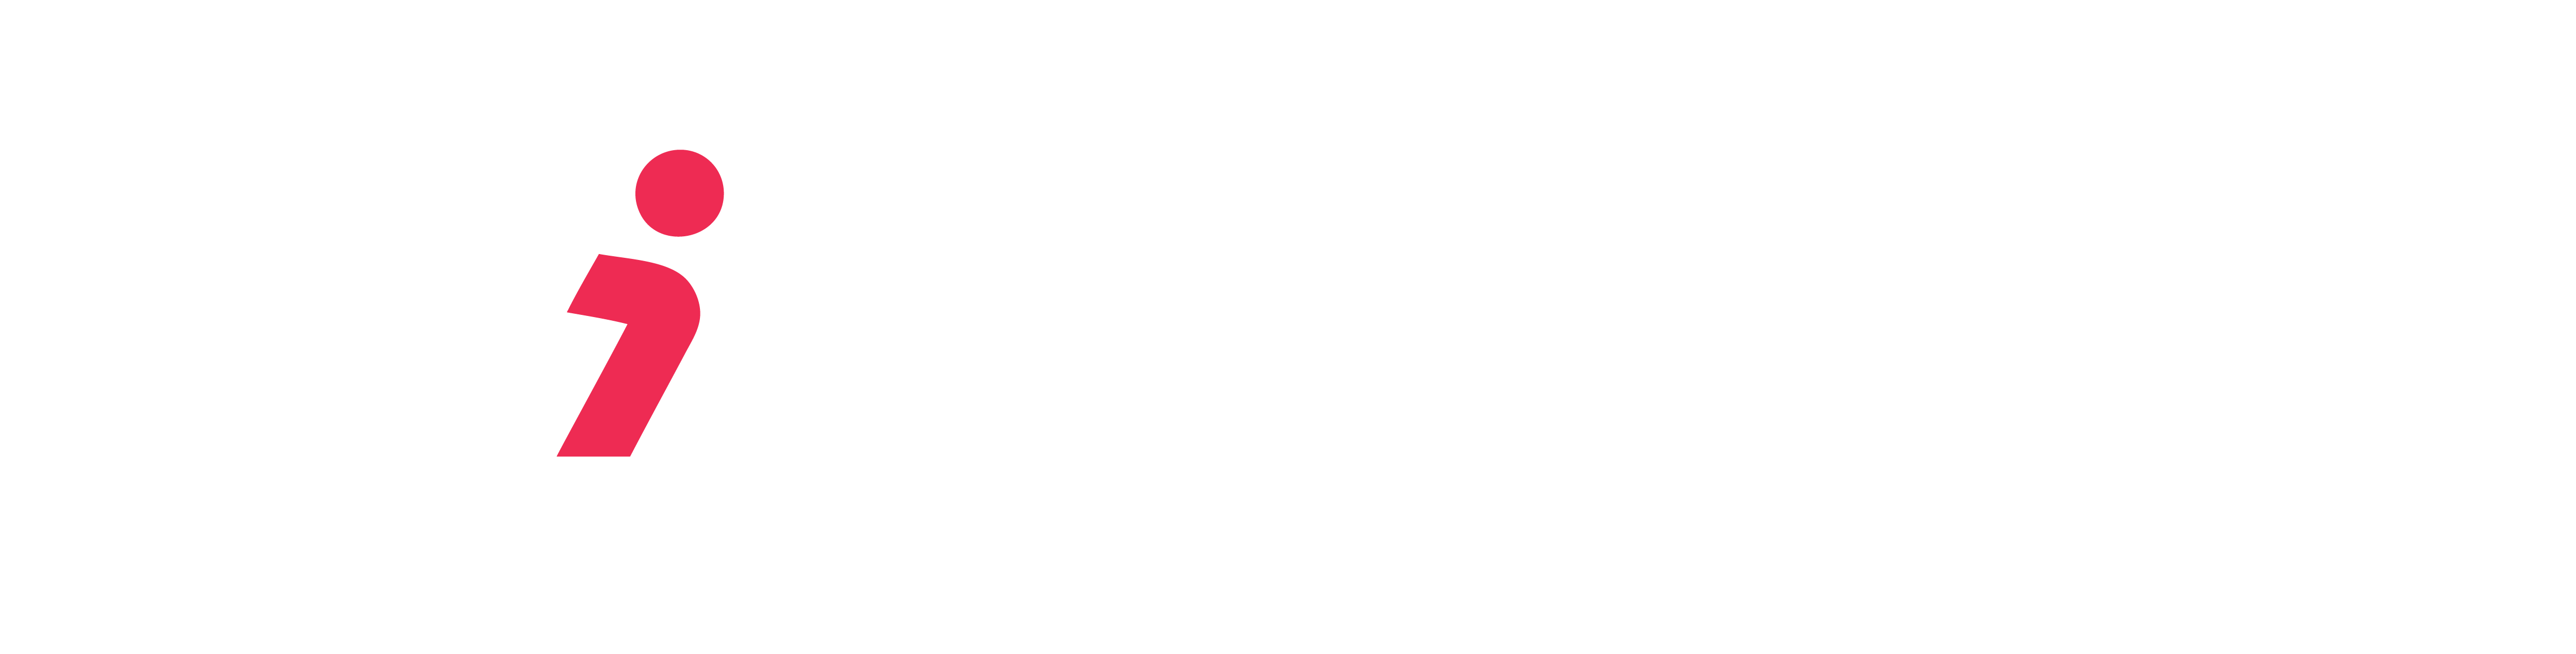 logo_iswitch_h_white2